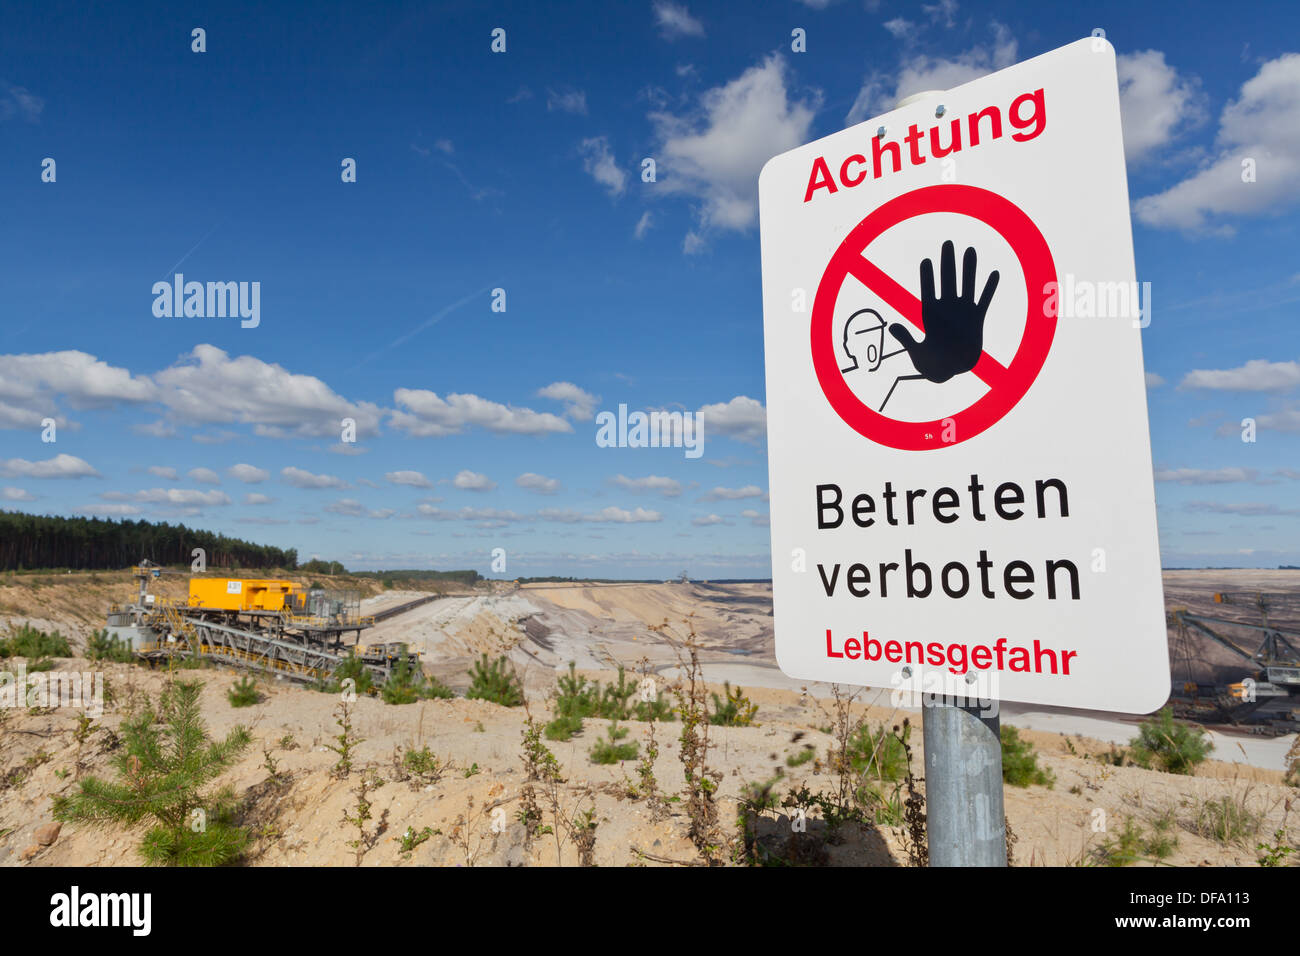 'Betreten verboten' (no entry) sign at opencast brown coal mine - Stock Image